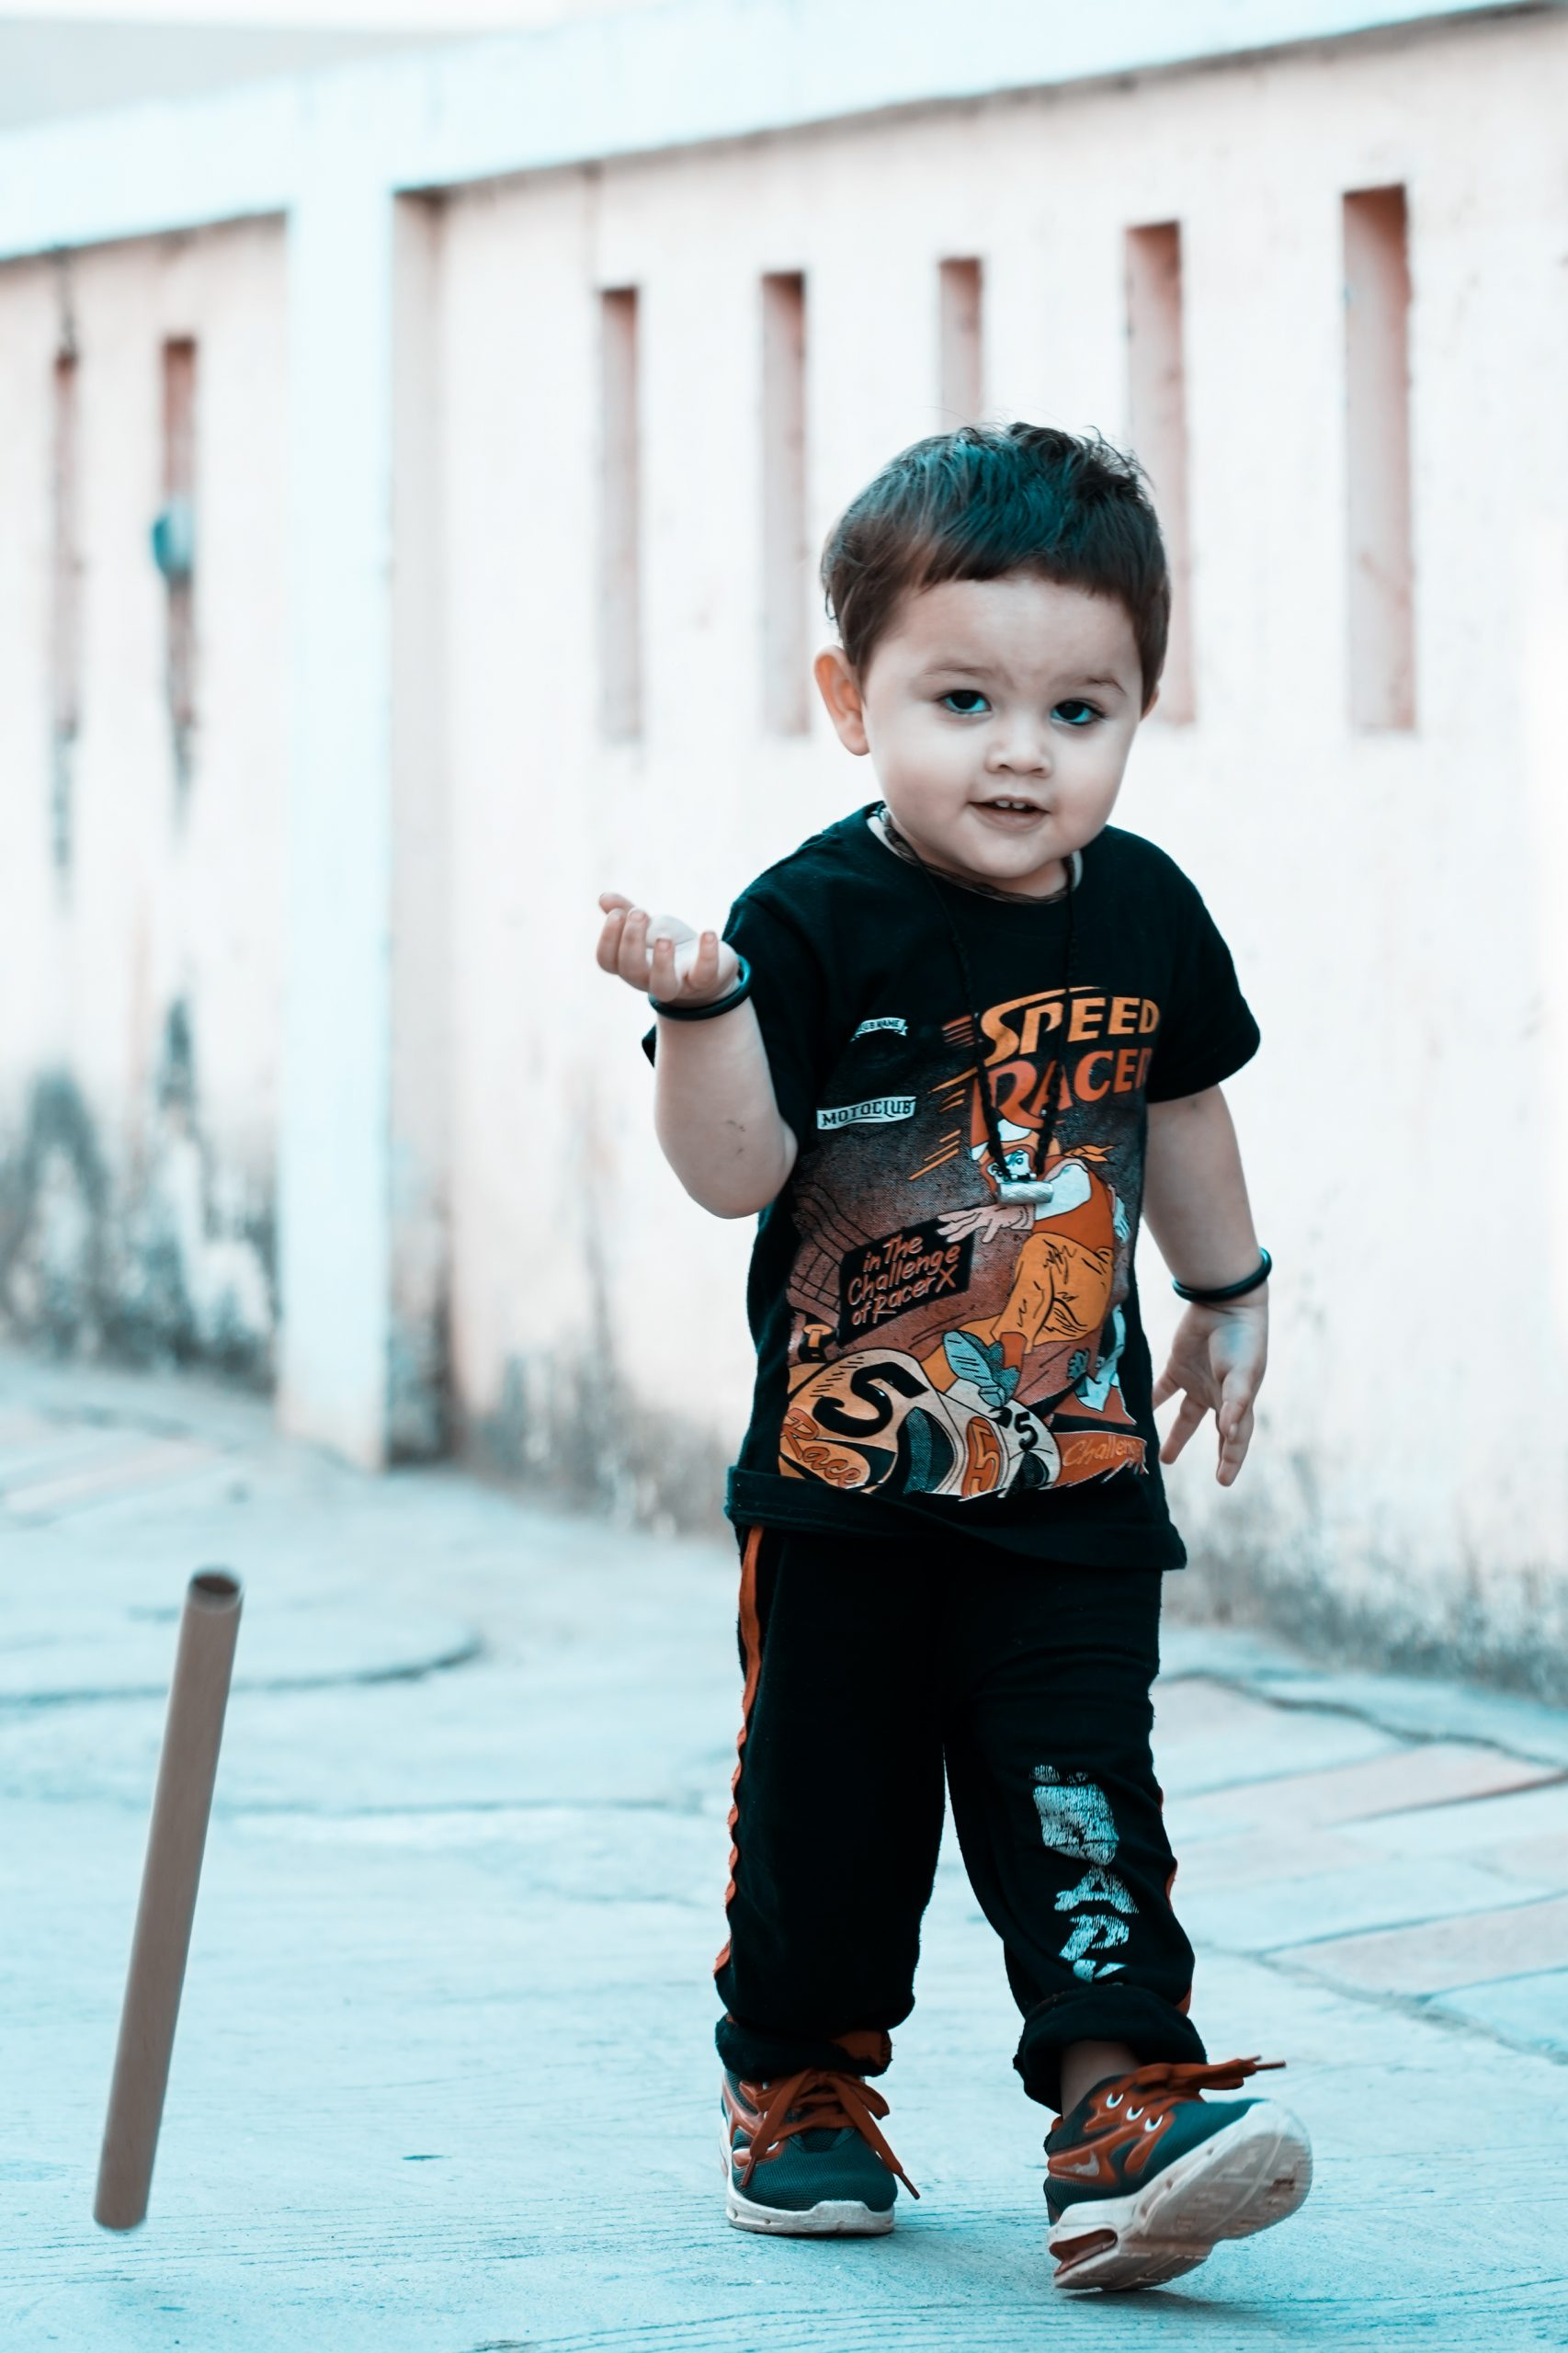 Toddler walking on an alley